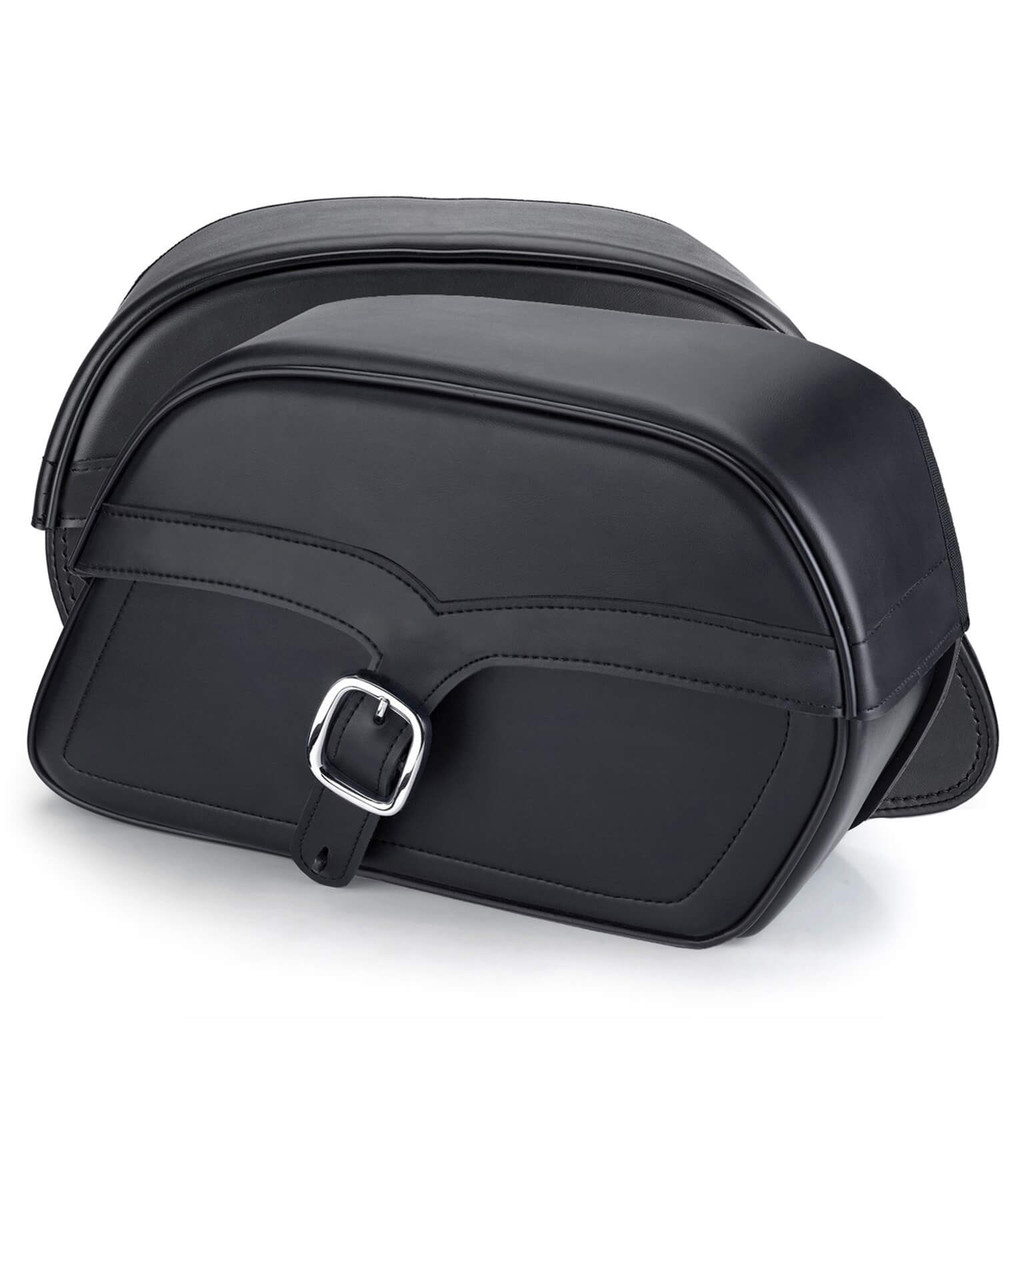 Victory High Ball SS Slanted Large Motorcycle Saddlebags both bags view